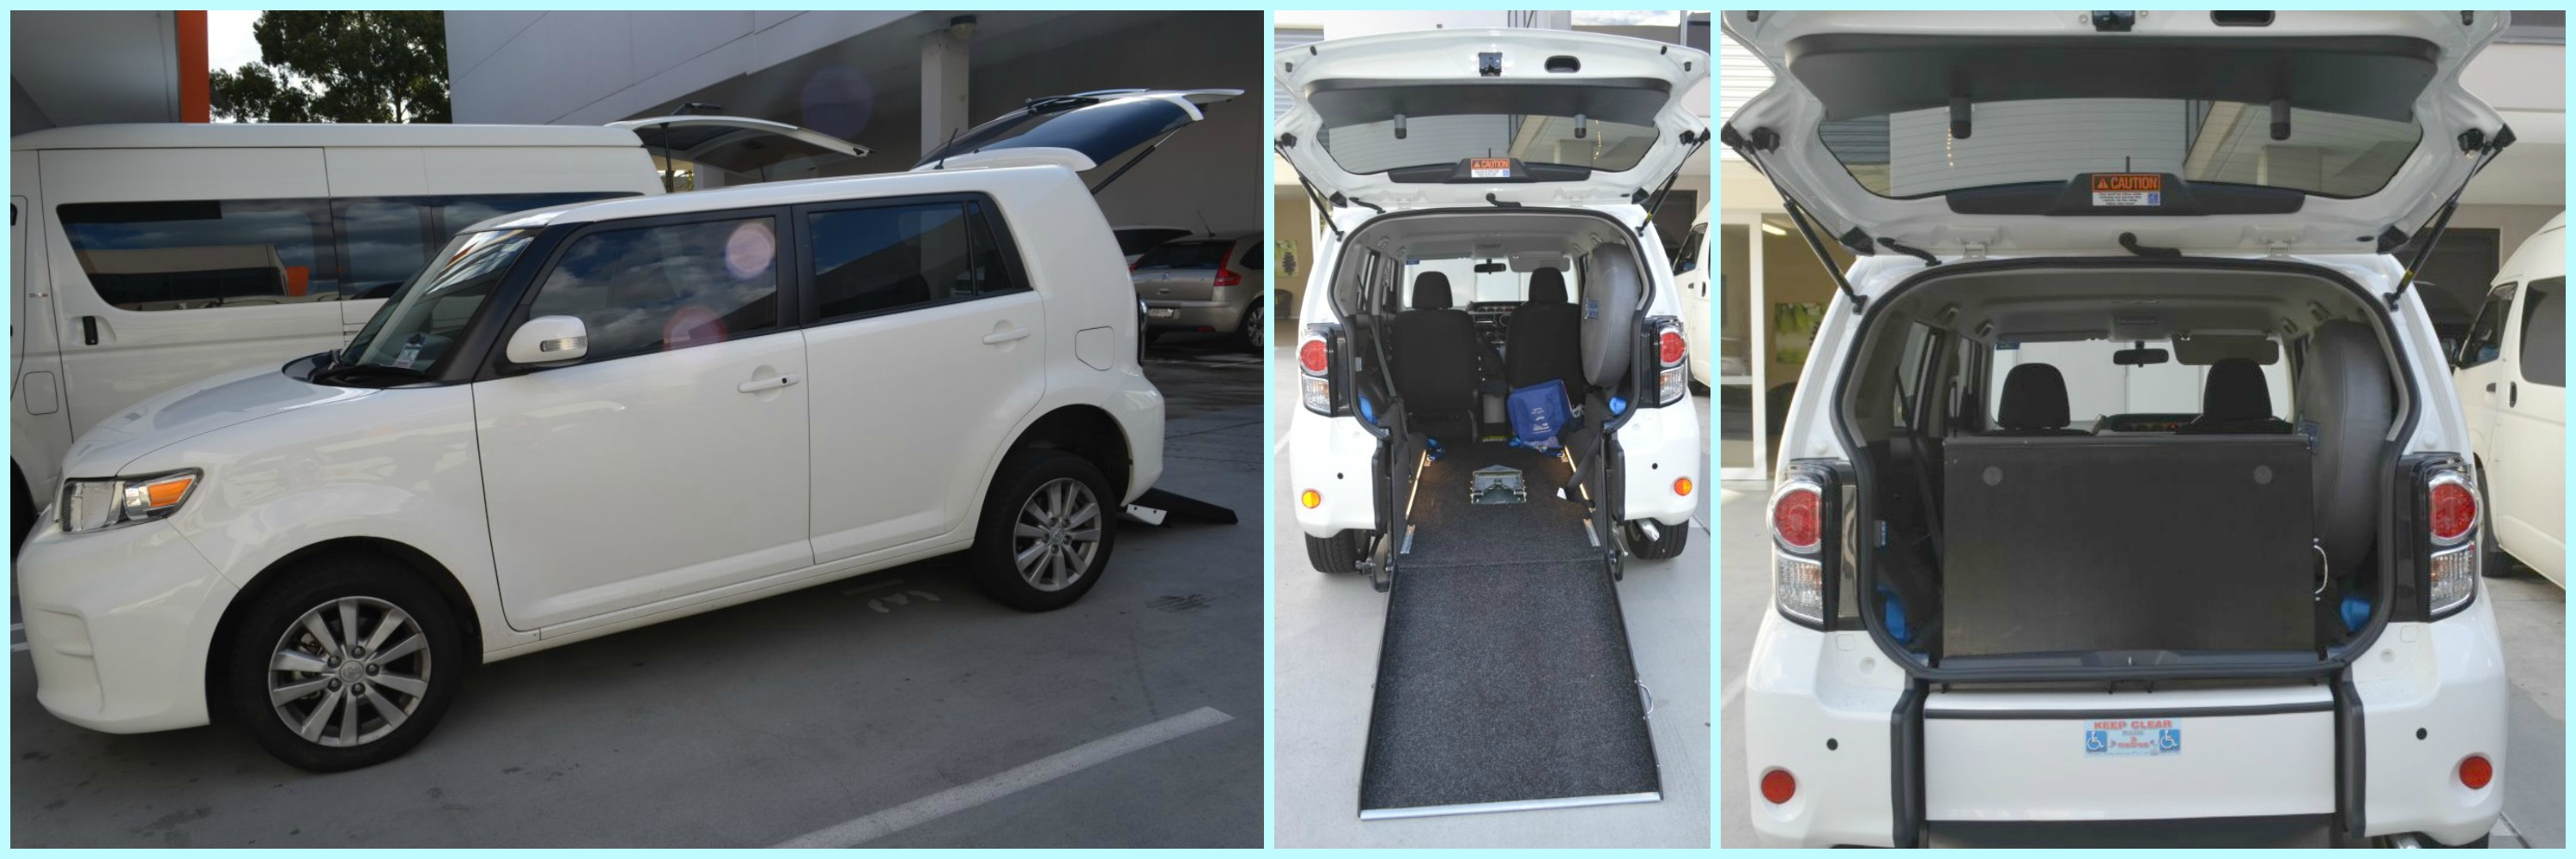 CAR MODIFICATION - WHEELCHAIR ACCESSIBLE VEHICLES - Have ...